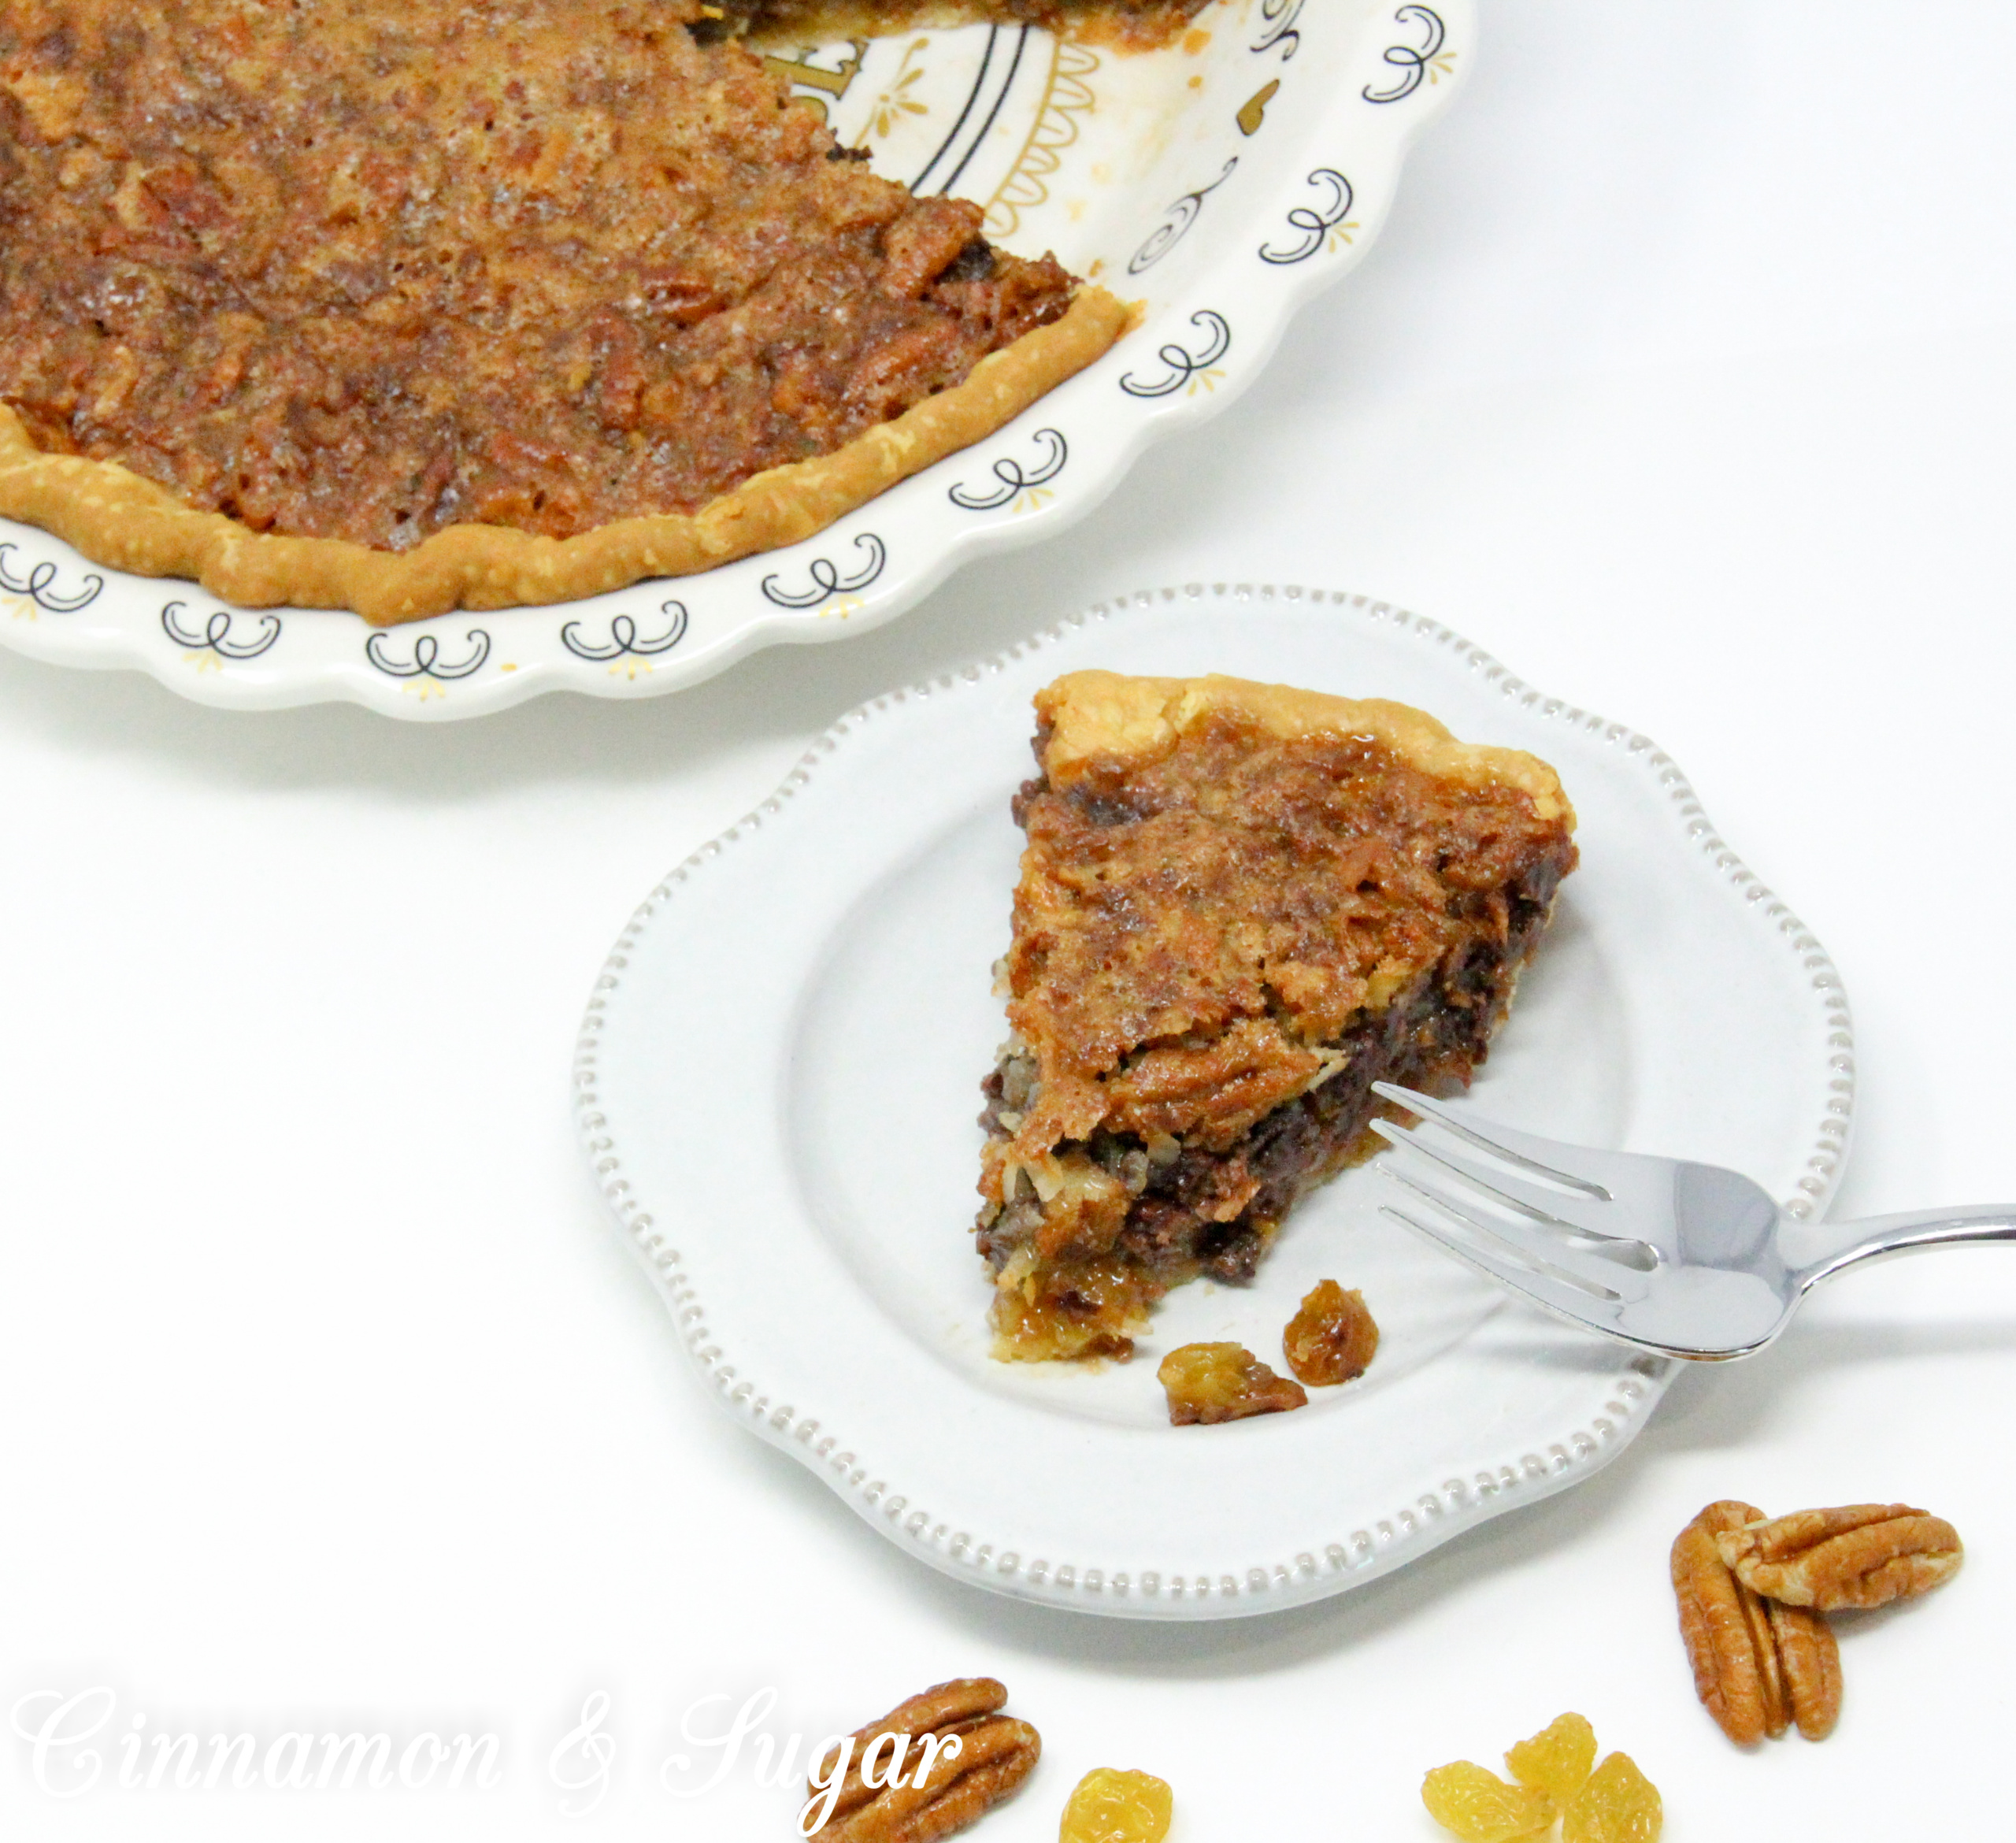 With a base similar to pecan pie, the addition of chocolate, raisins, and coconut raises the scrumptious level of Sugar High Pie to the stratosphere! Recipe shared with permission granted by Ellen Byron, author of MURDER IN THE BAYOU BONEYARD.